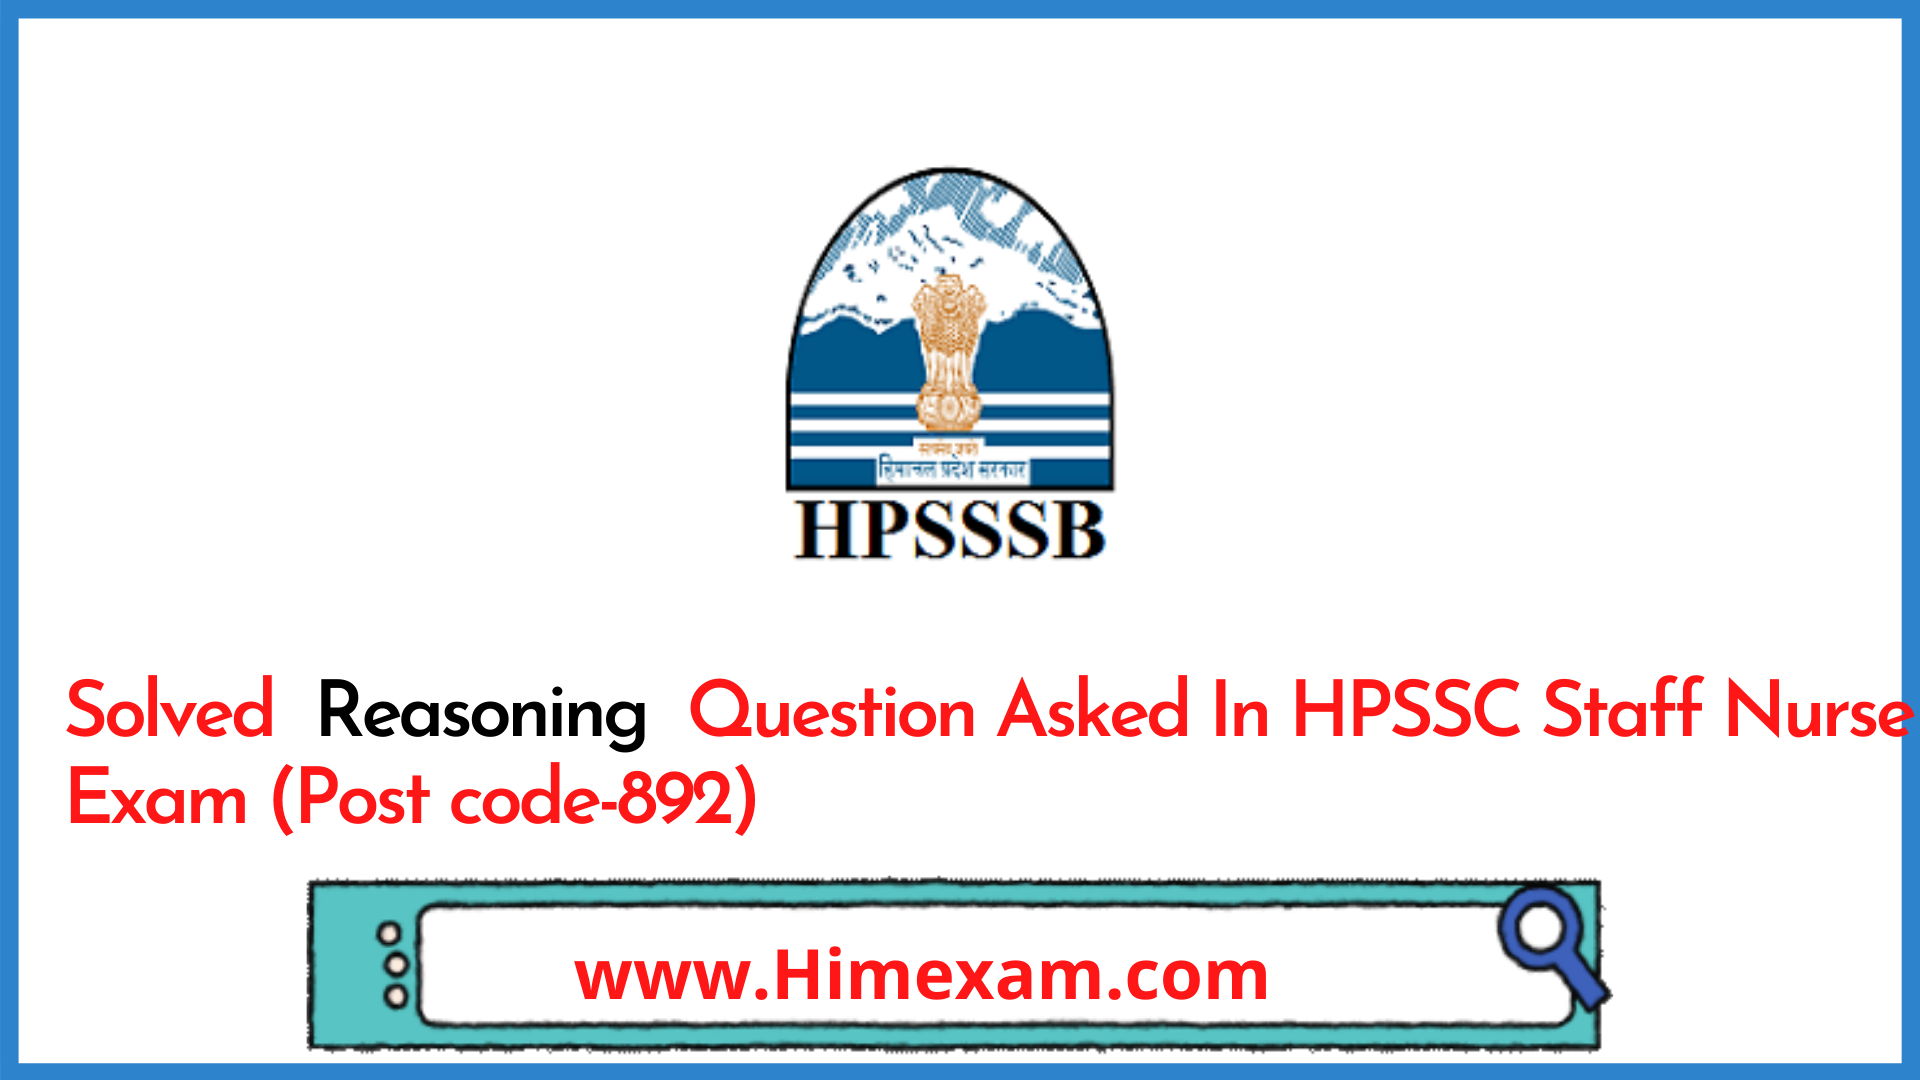 Solved  Reasoning  Question Asked In HPSSC Staff Nurse Exam (Post code-892)